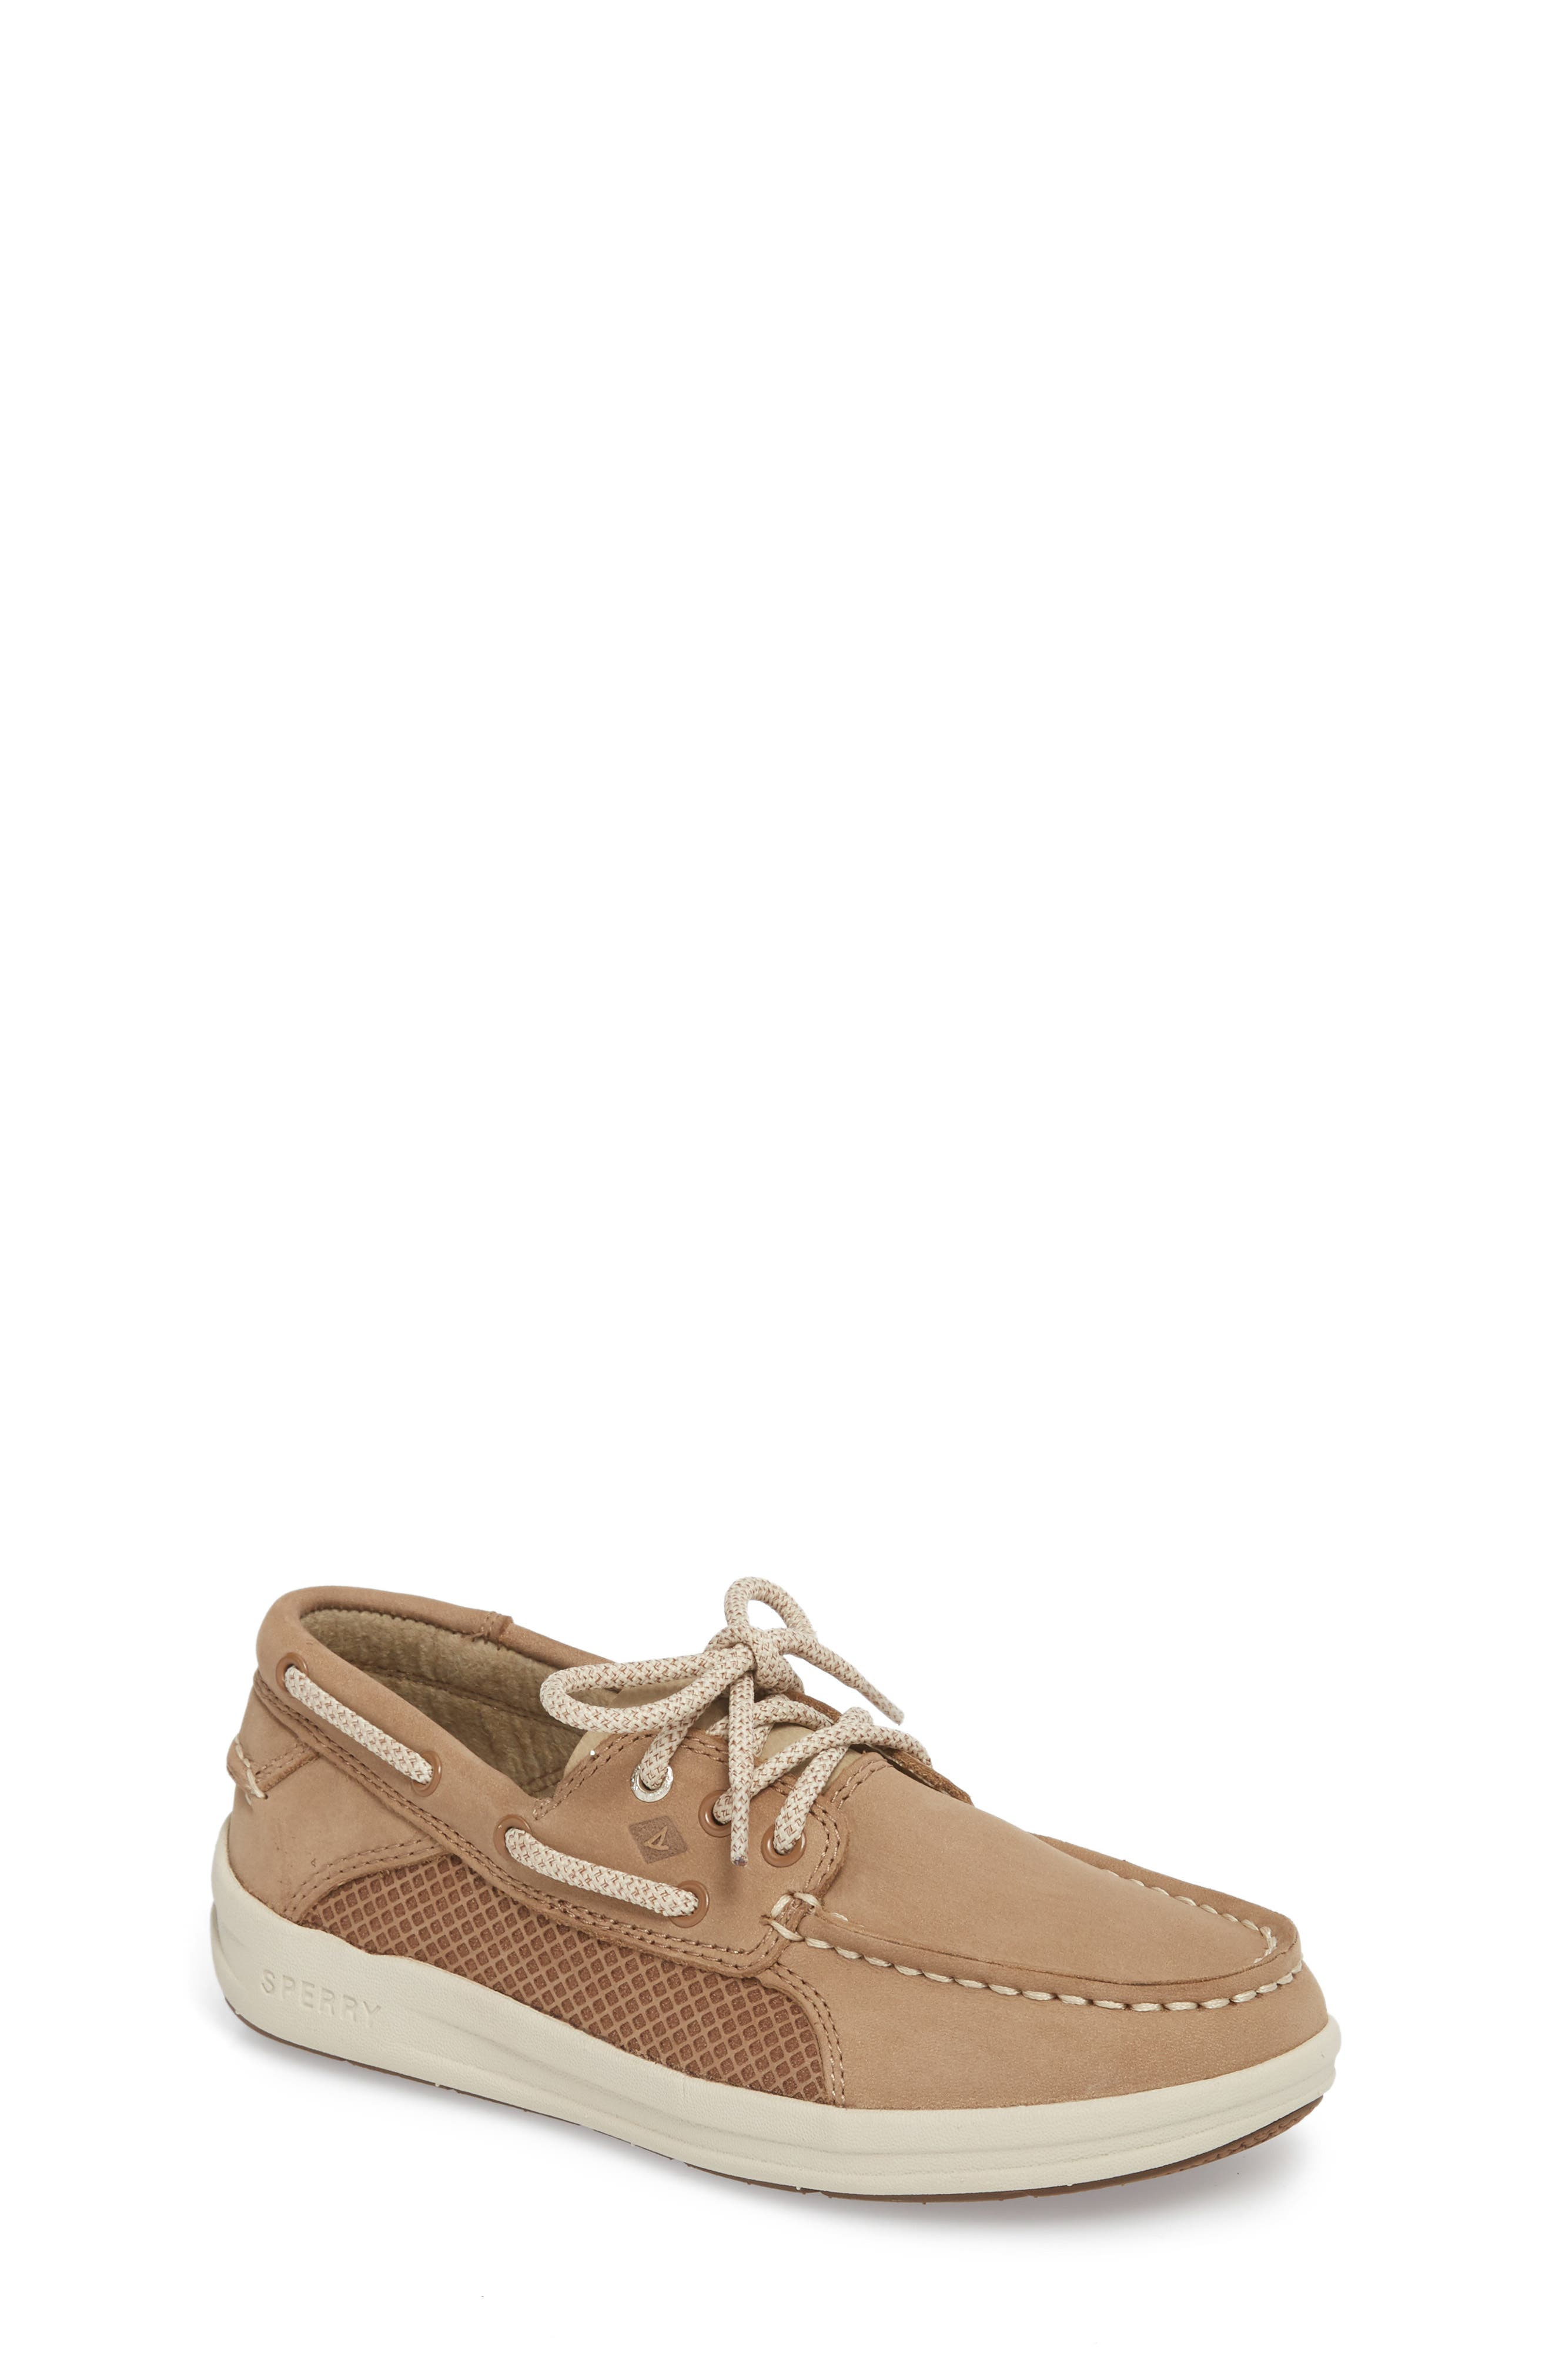 Sperry Gamefish Boat Shoe,                         Main,                         color, Light Tan Leather